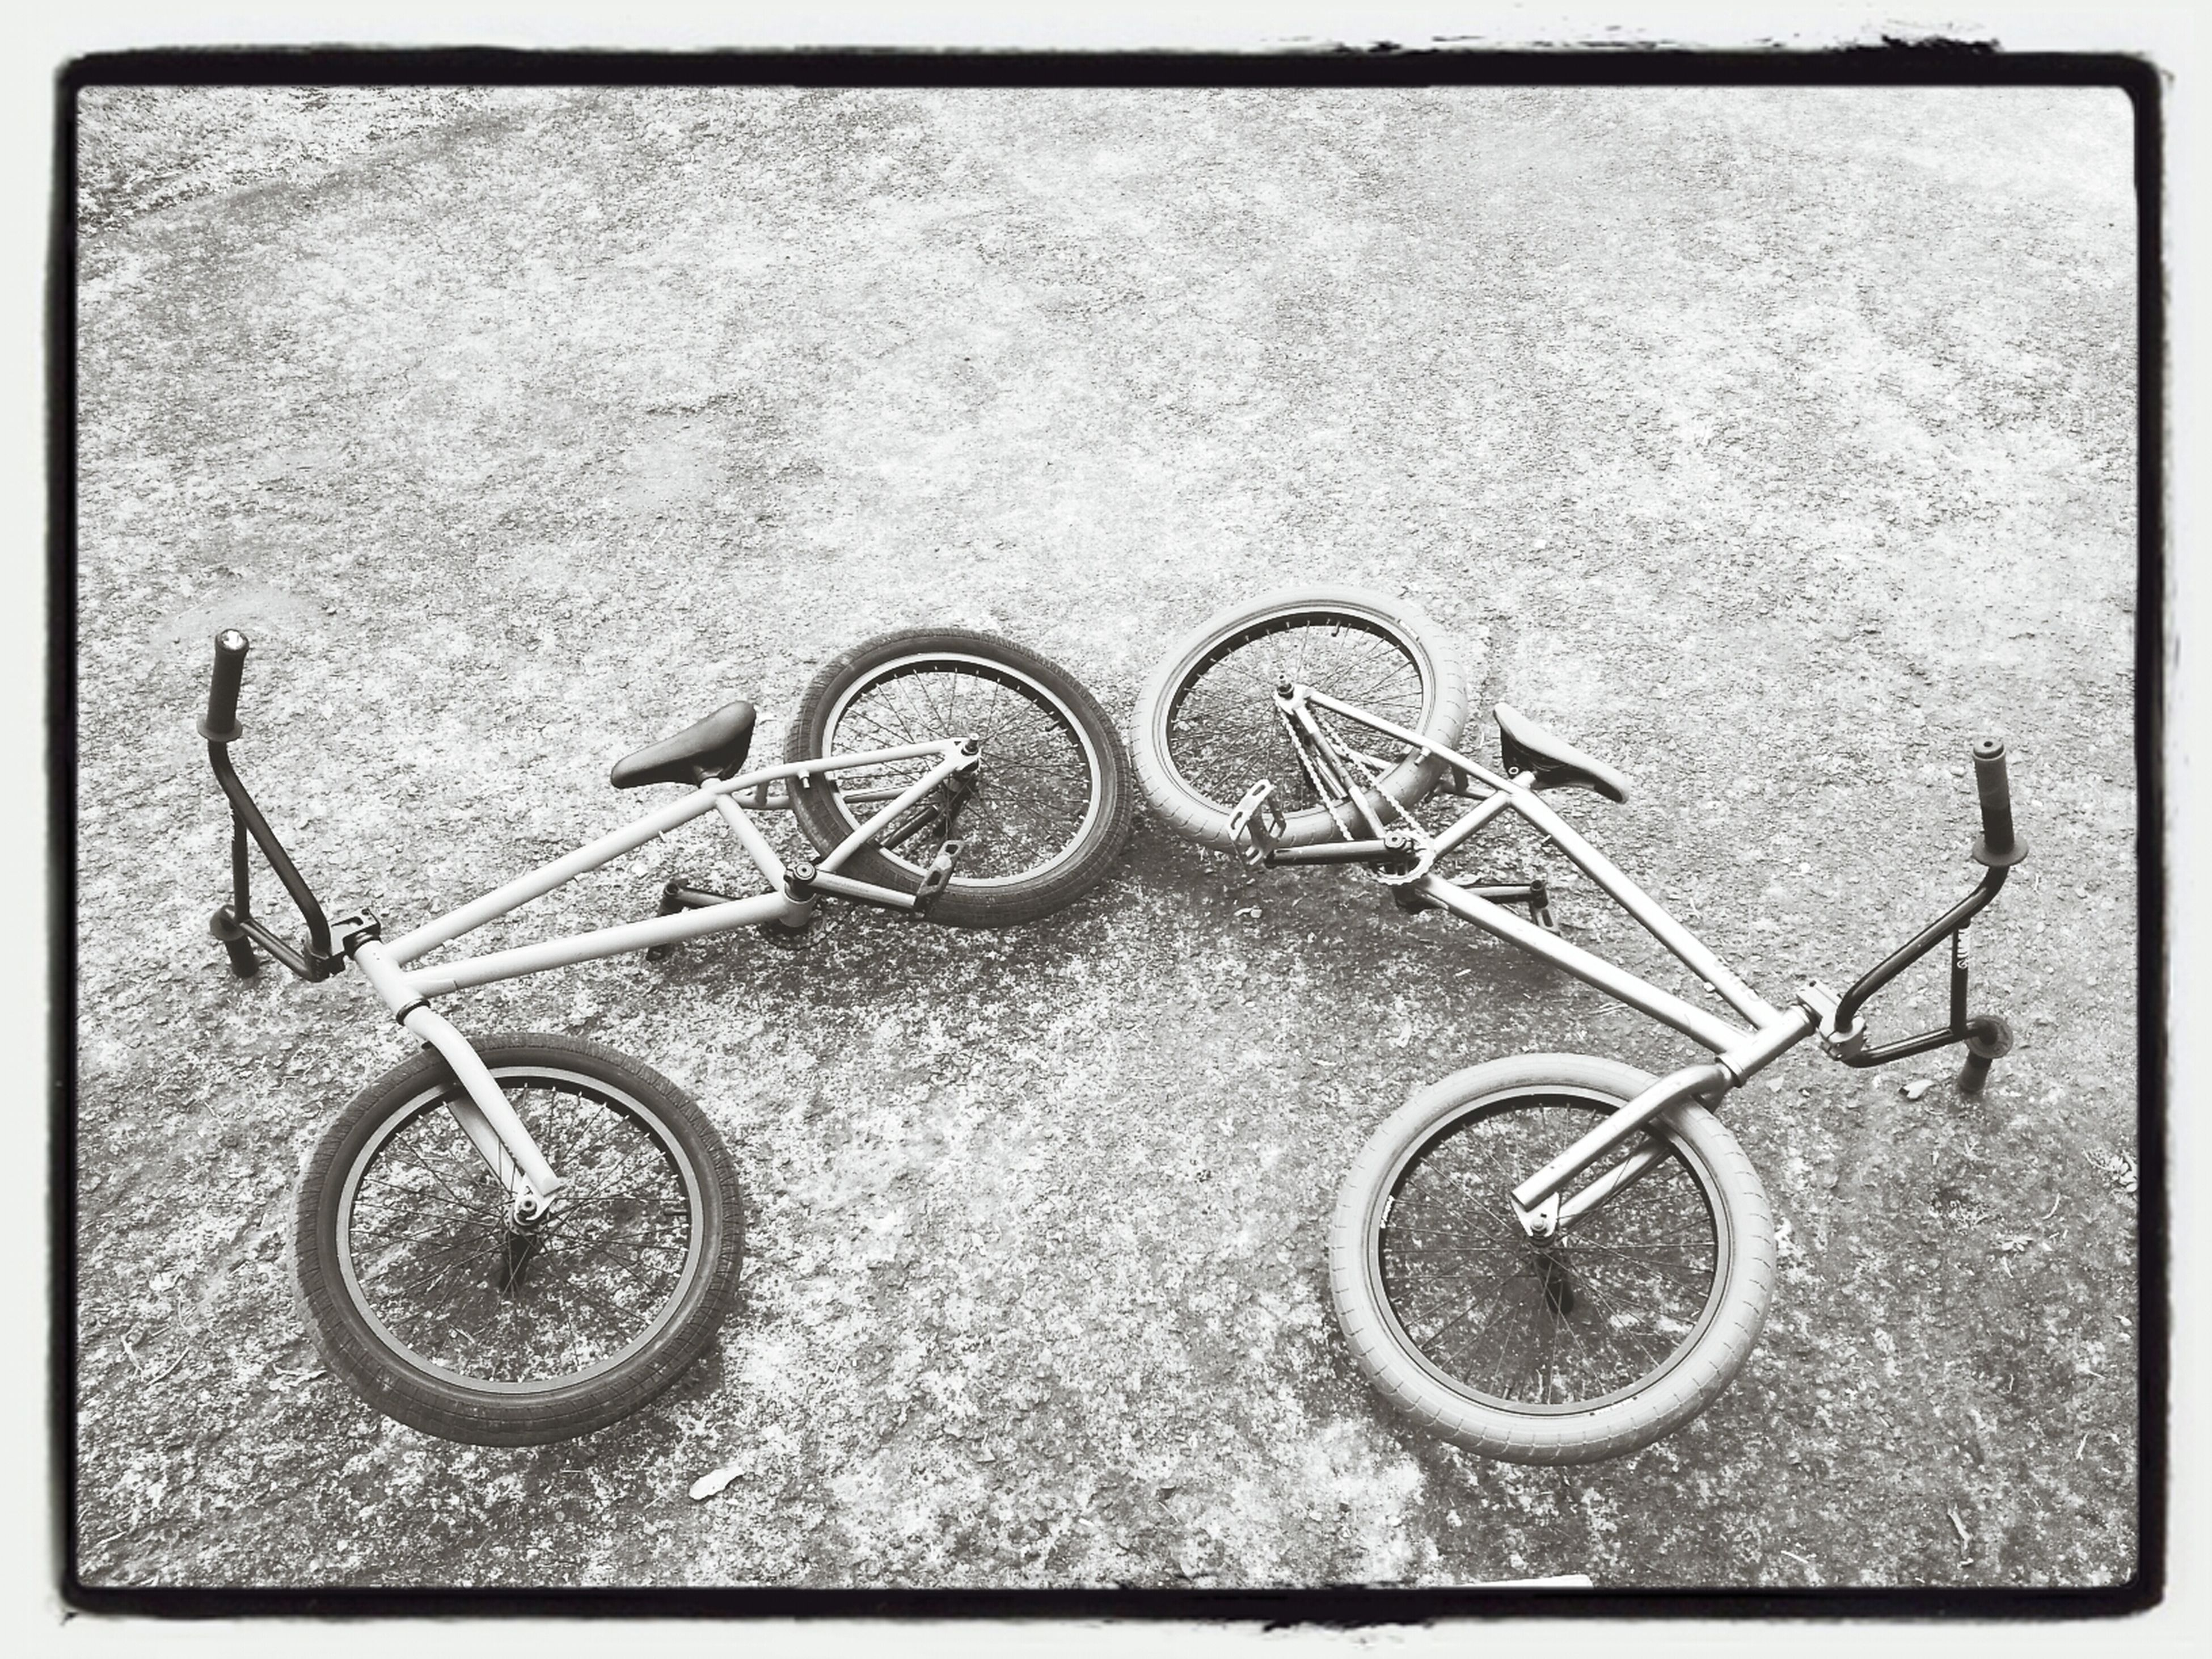 bicycle, transfer print, auto post production filter, metal, stationary, transportation, wheel, old, land vehicle, abandoned, parked, wall - building feature, mode of transport, no people, close-up, parking, high angle view, obsolete, retro styled, day